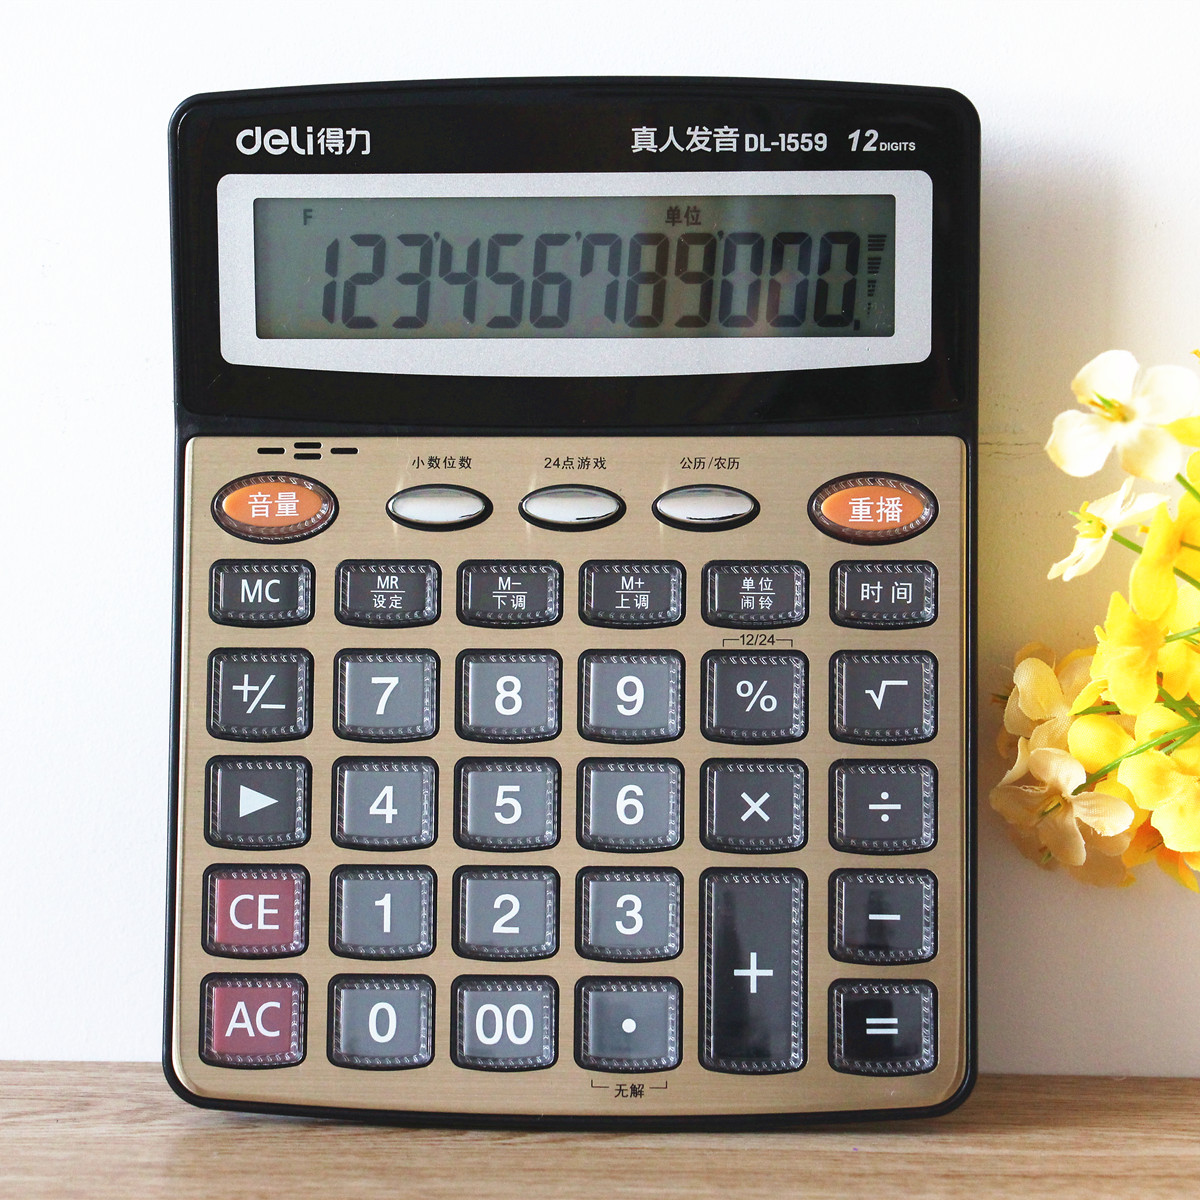 Effective voice calculator crystal big button big screen computer metal panel business office supplies